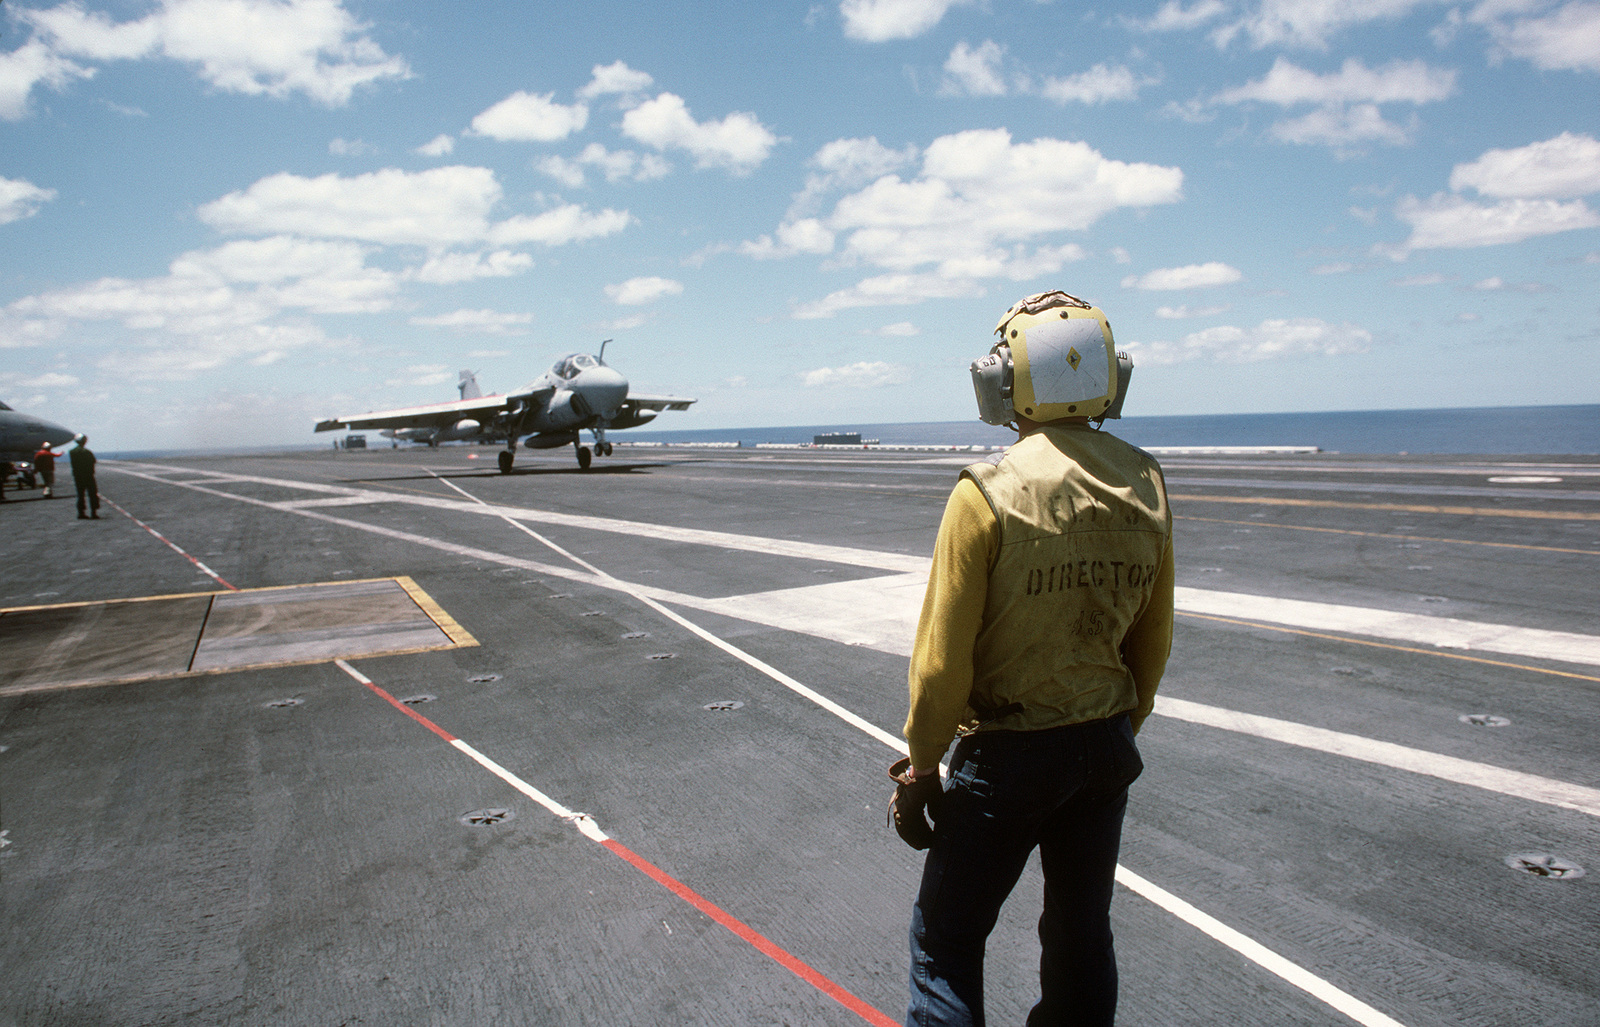 """A plane director watches as an A-6E Intruder aircraft executes a""""touch and go""""takeoff from the nuclear-powered aircraft carrier USS DWIGHT D. EISENHOWER (CVN 69)"""